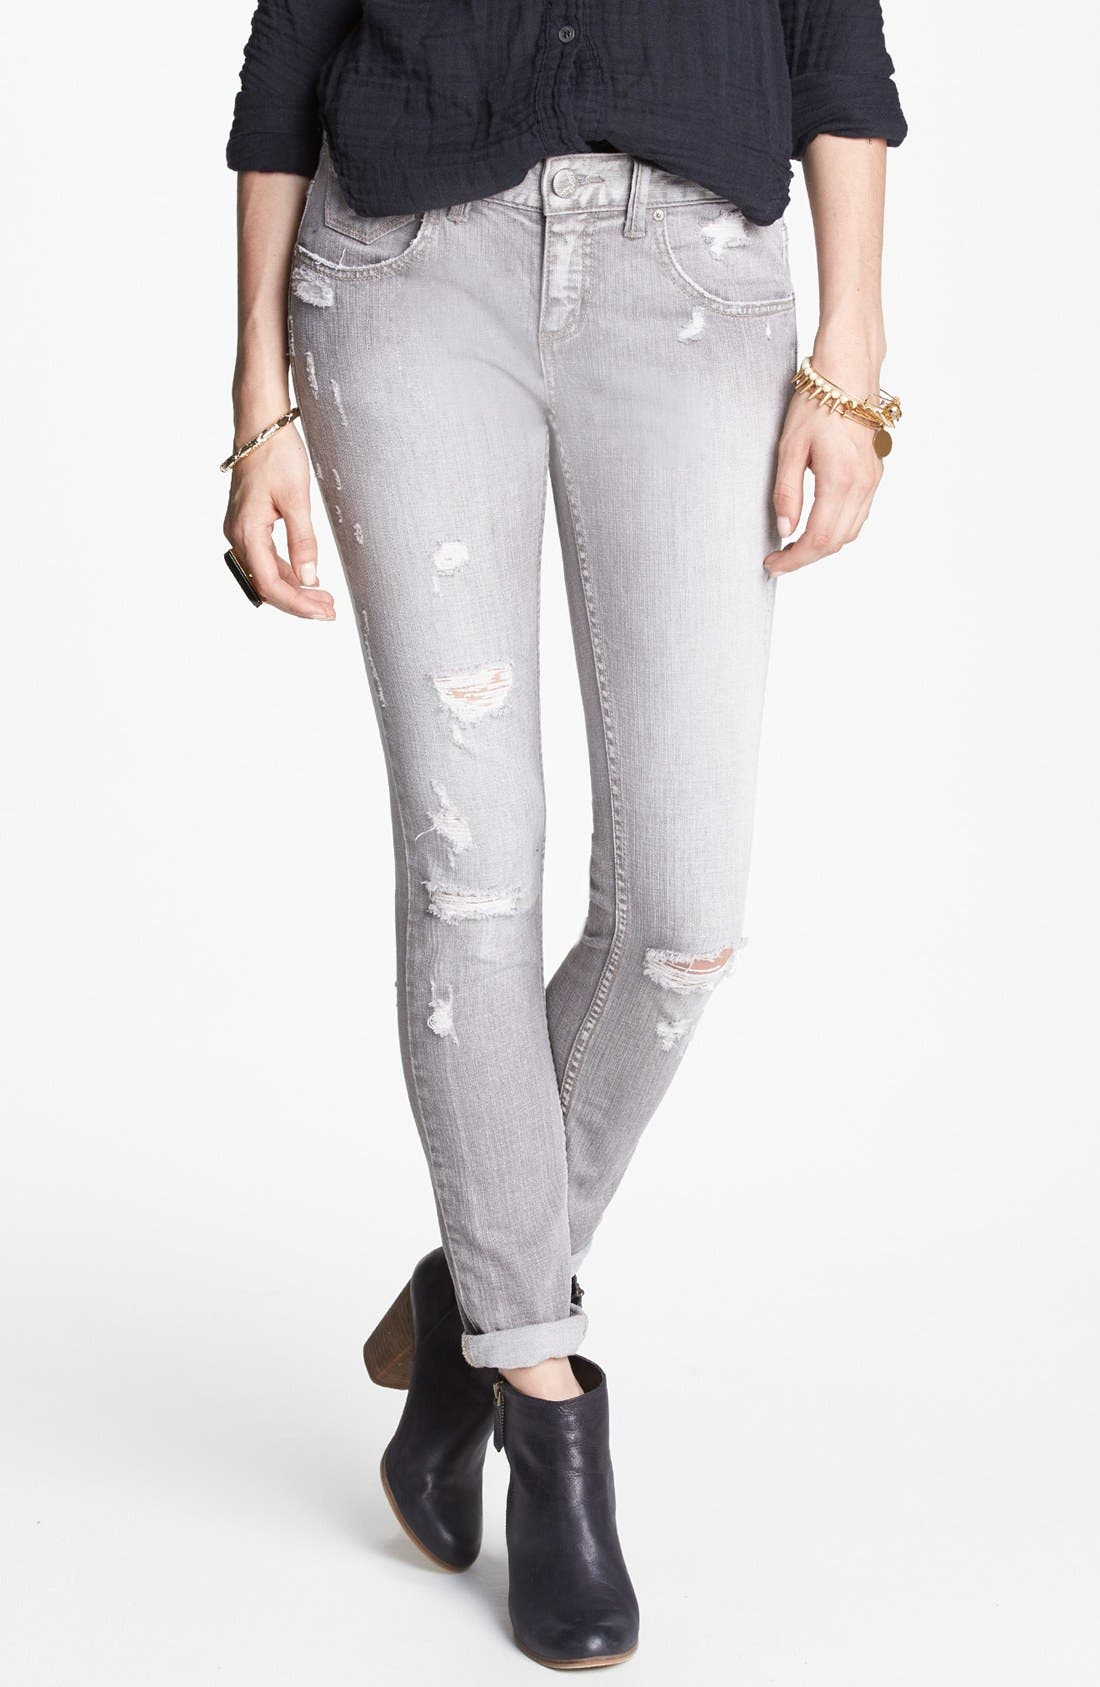 Alternate Image 1 Selected - Free People Destroyed Skinny Jeans (Copenhagen)